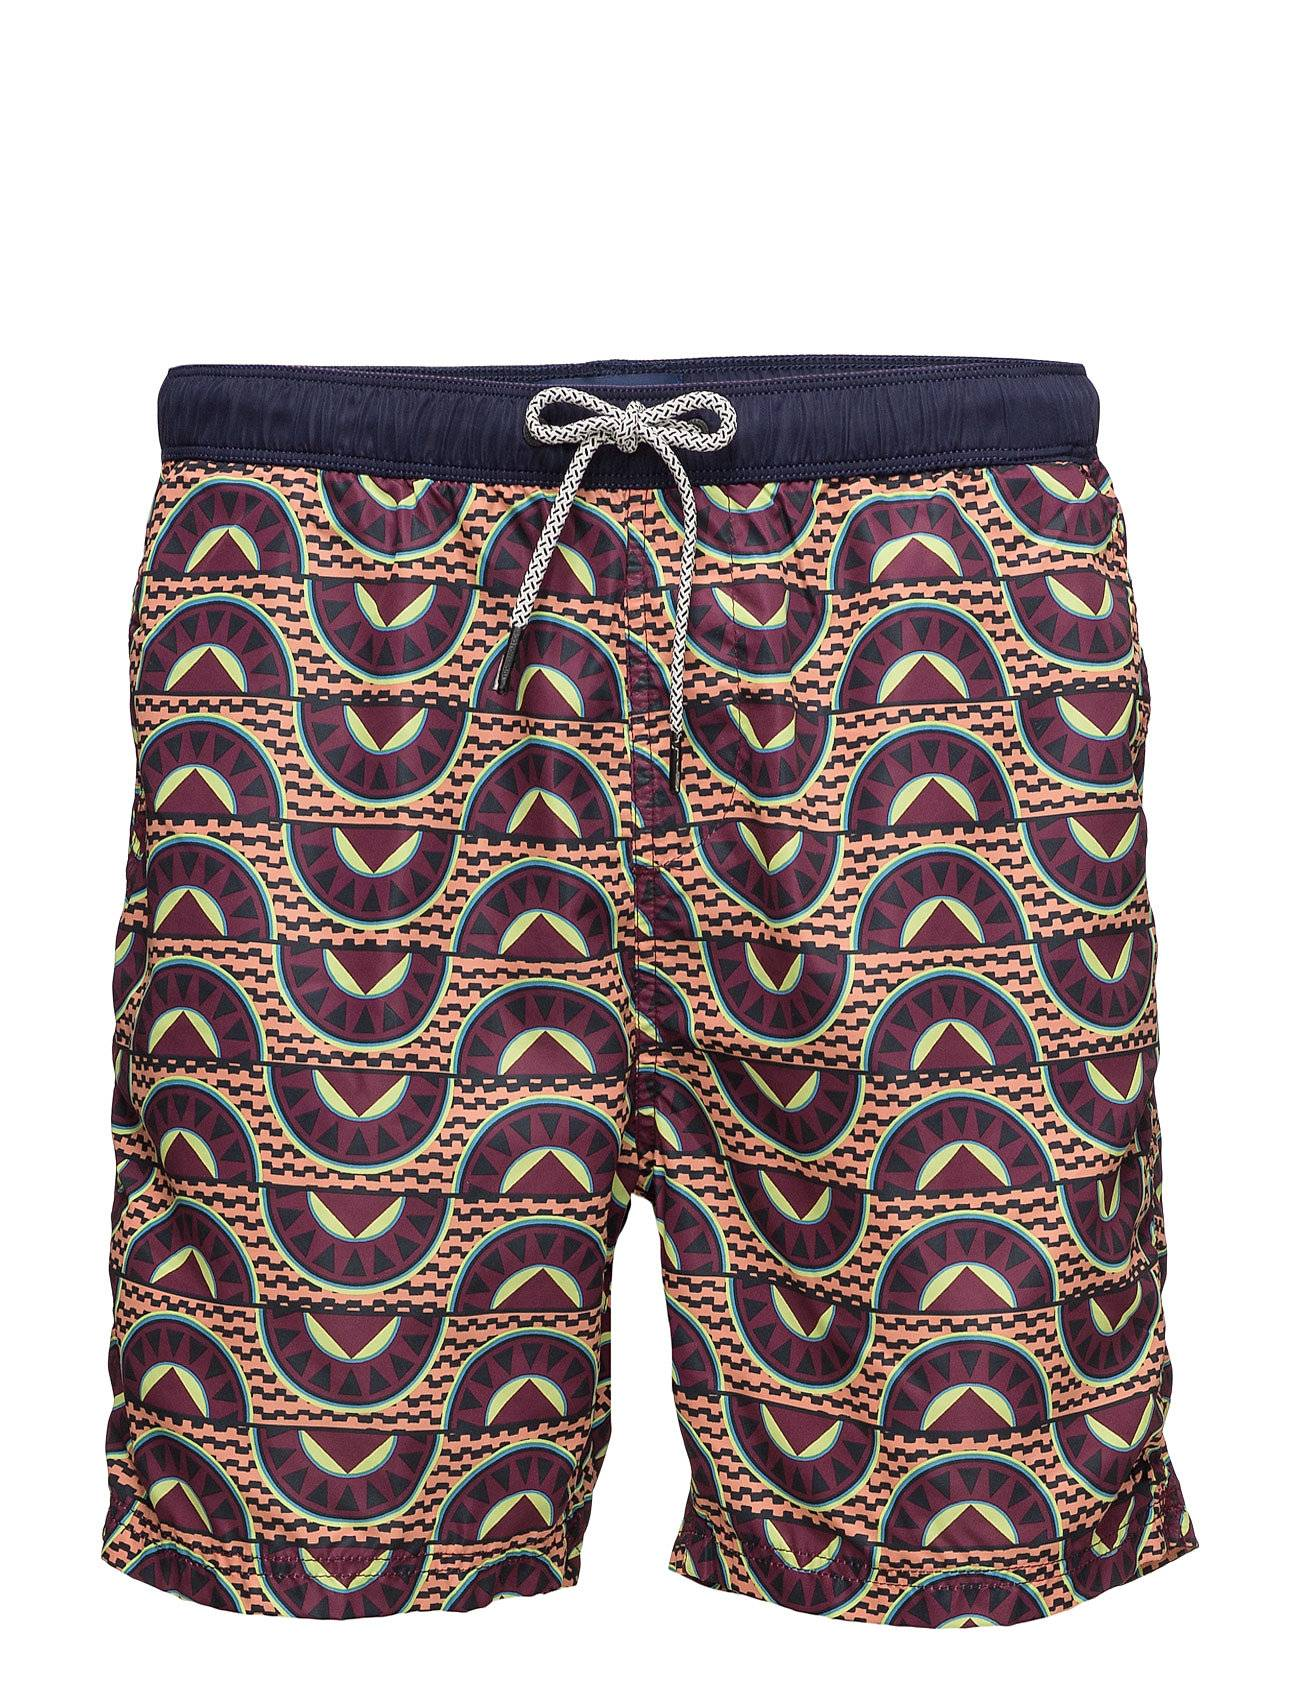 Scotch & Soda Medium Length Swim Short In Fine Peached With Patter